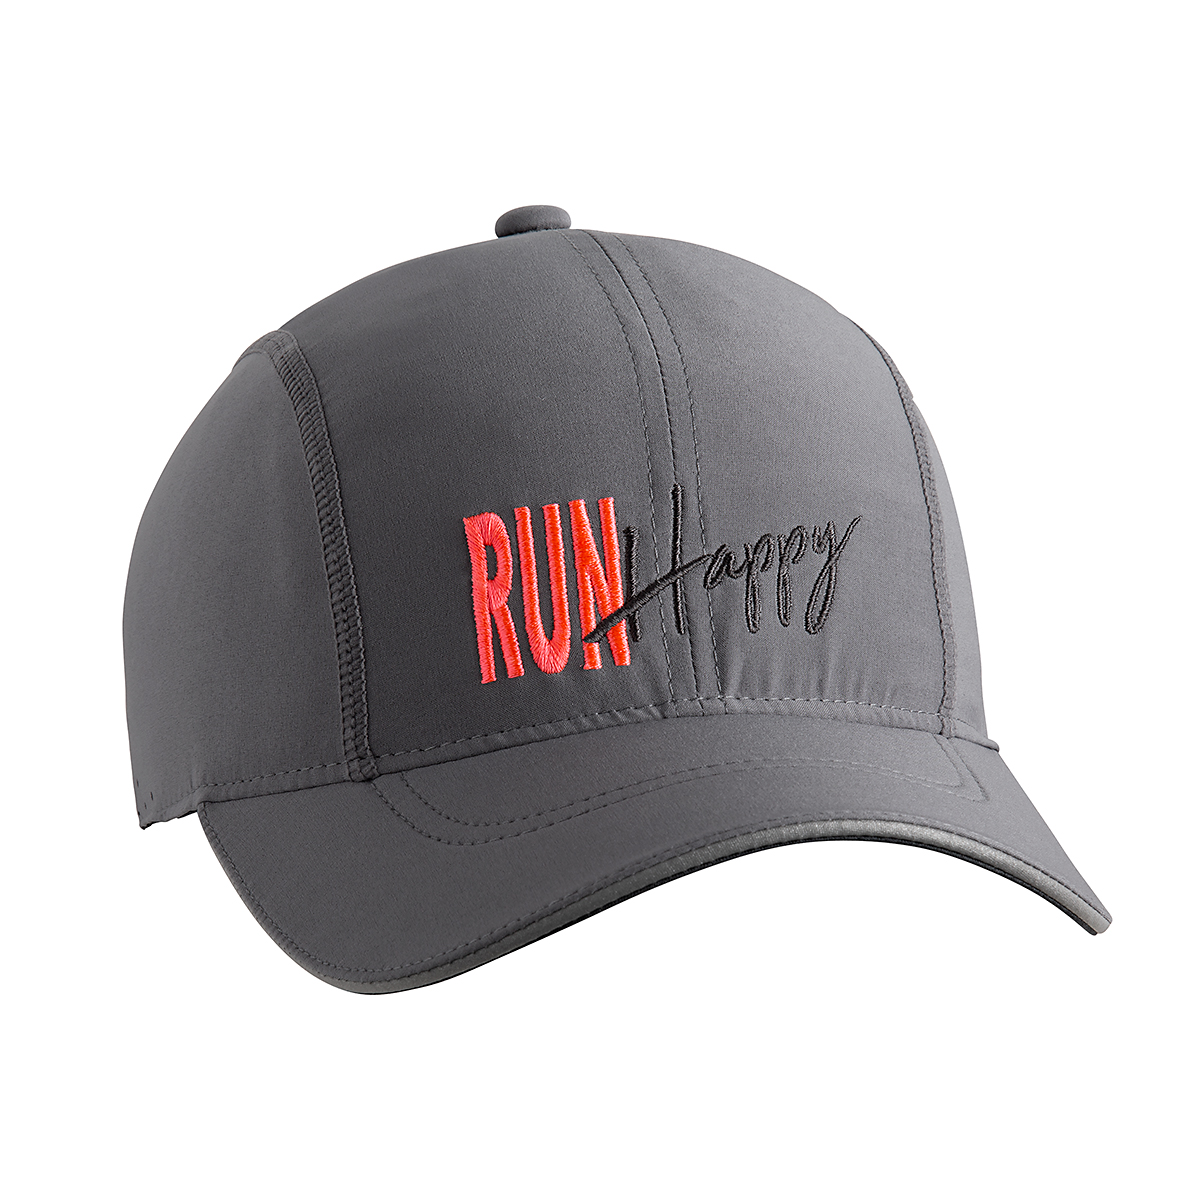 Brooks Chaser Hat - Color: Steel/Run Happy - Size: One Size, Steel/Run Happy, large, image 2